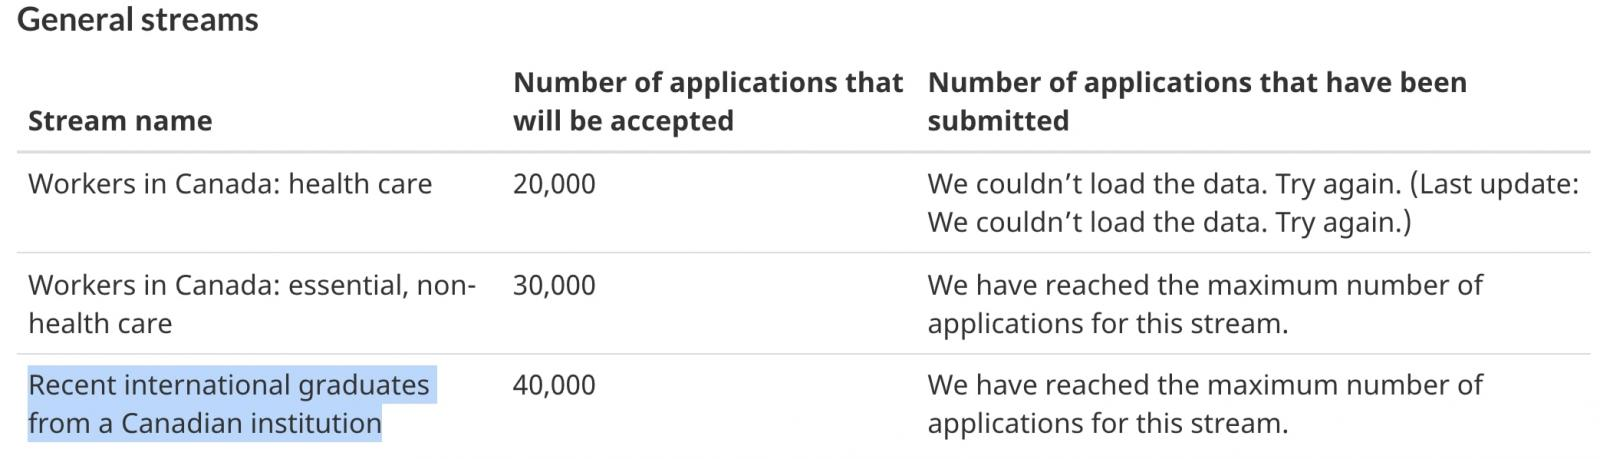 cic upper limit on applications